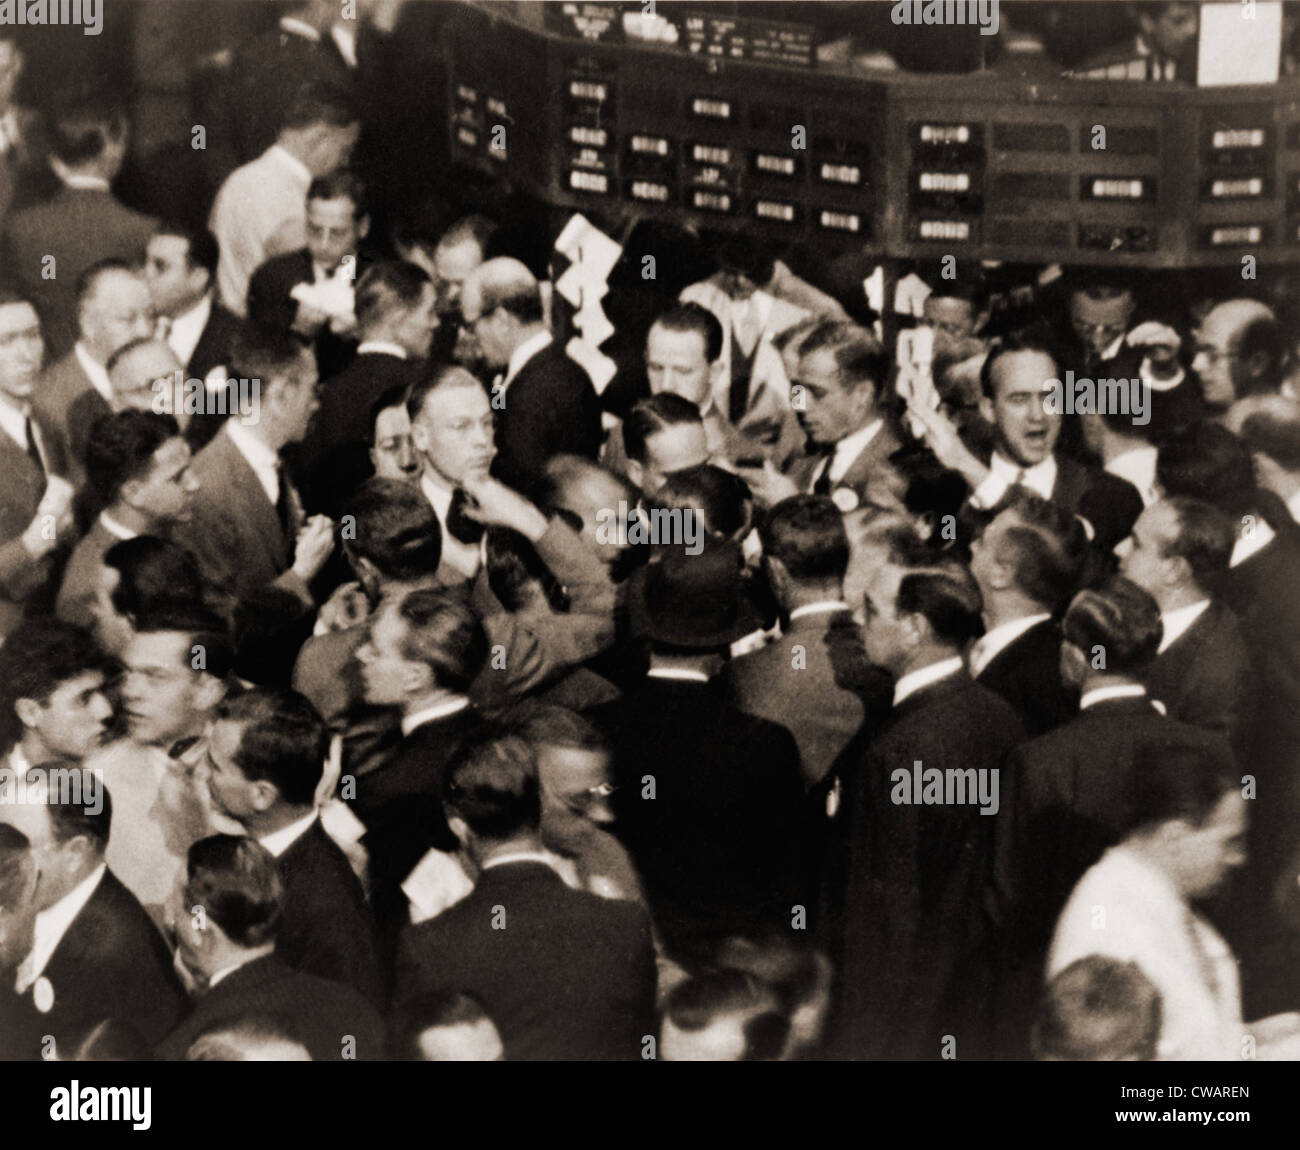 Stock traders on the floor of the New York Stock Exchange in 1936. - Stock Image